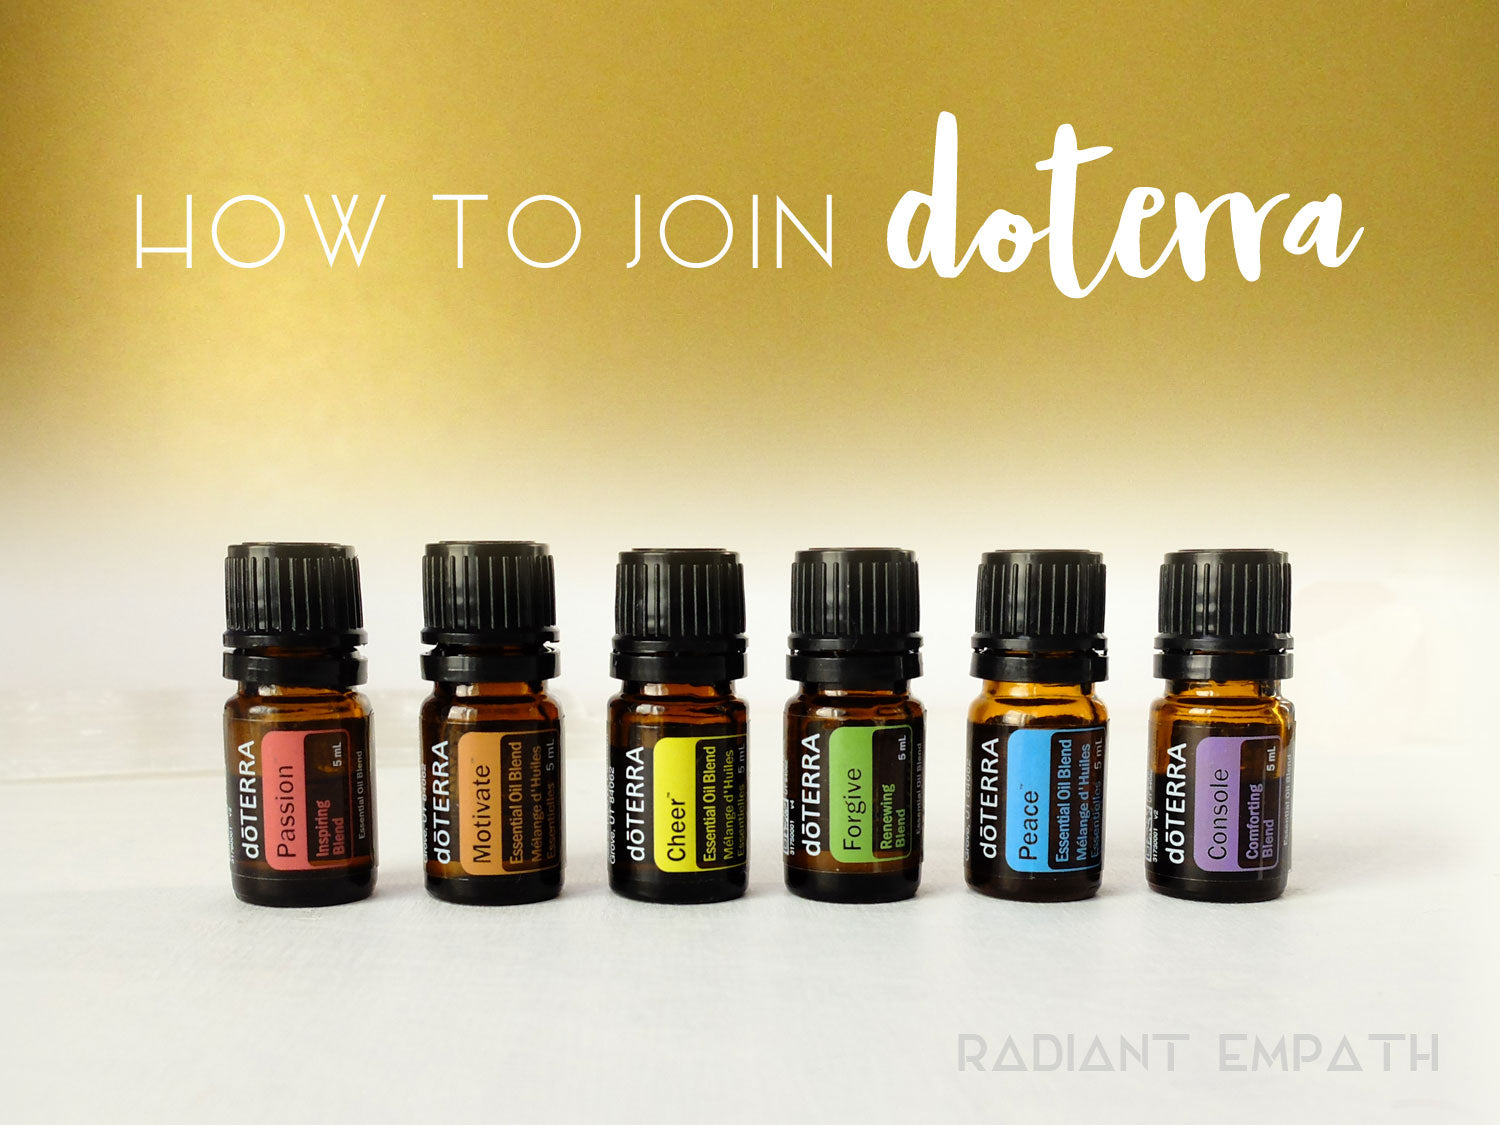 how to join doterra